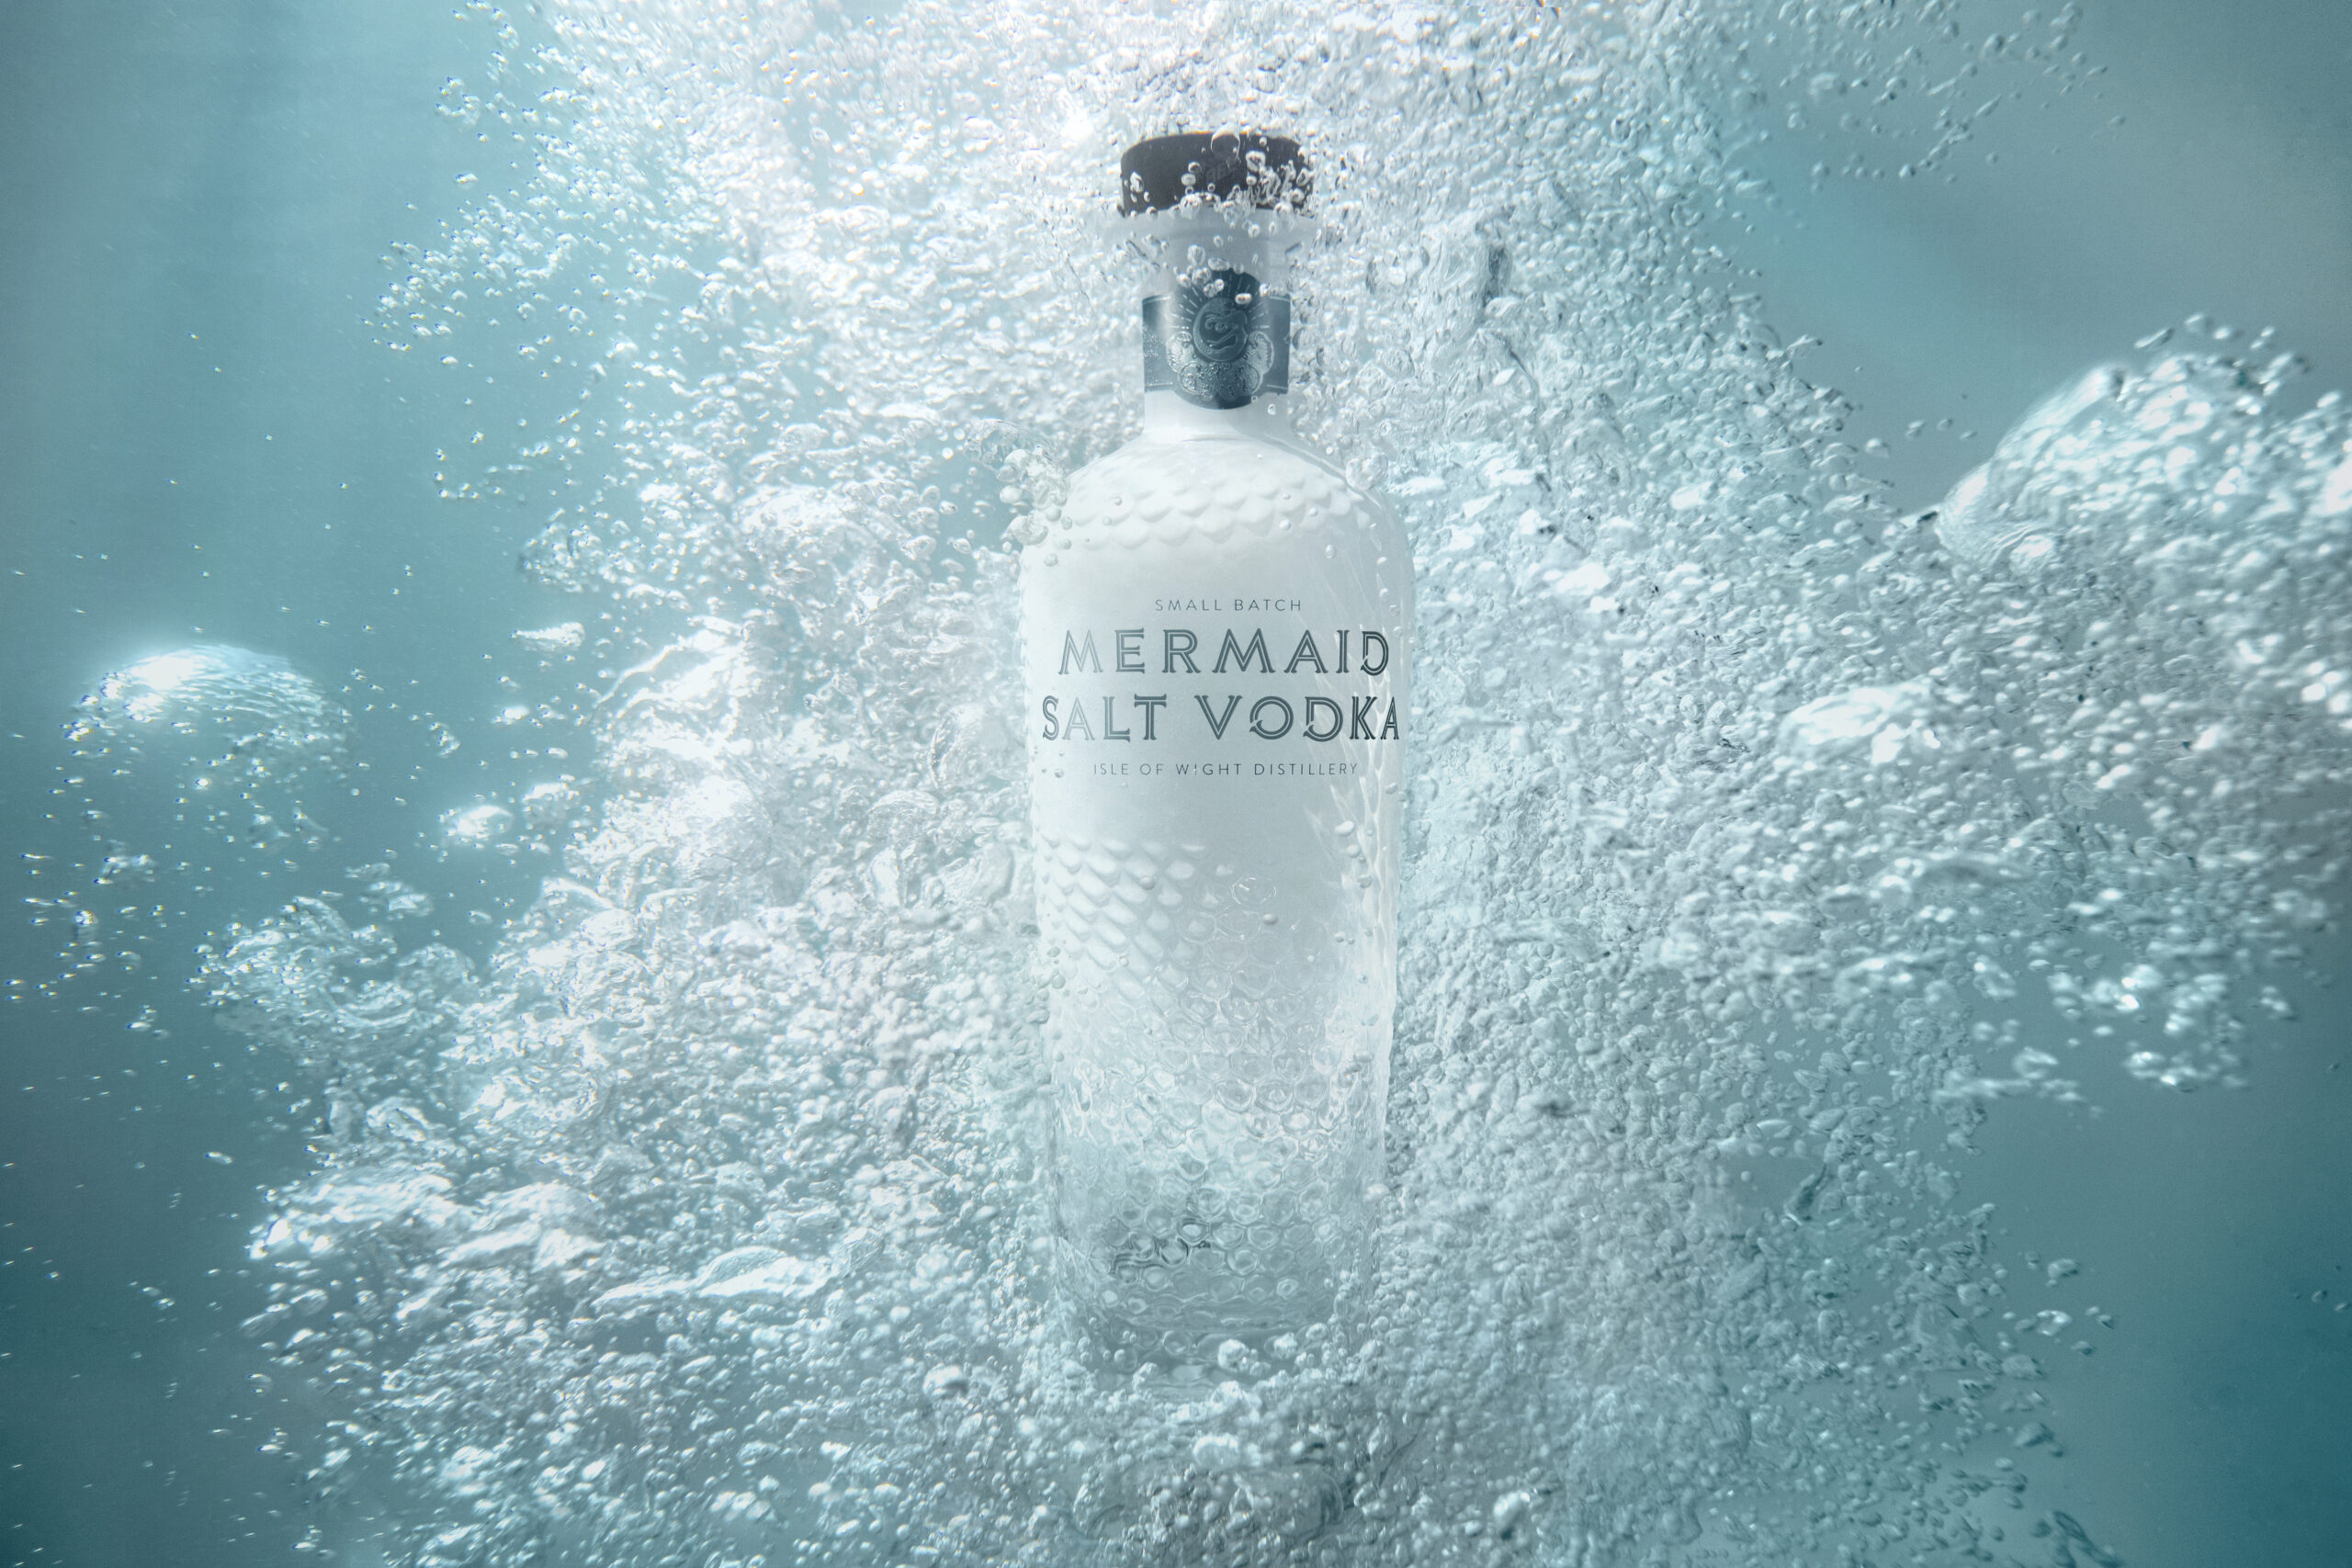 Produced by the Isle of Wight Distillery, Mermaid Salt Vodka is infused with locally sourced island sea salt